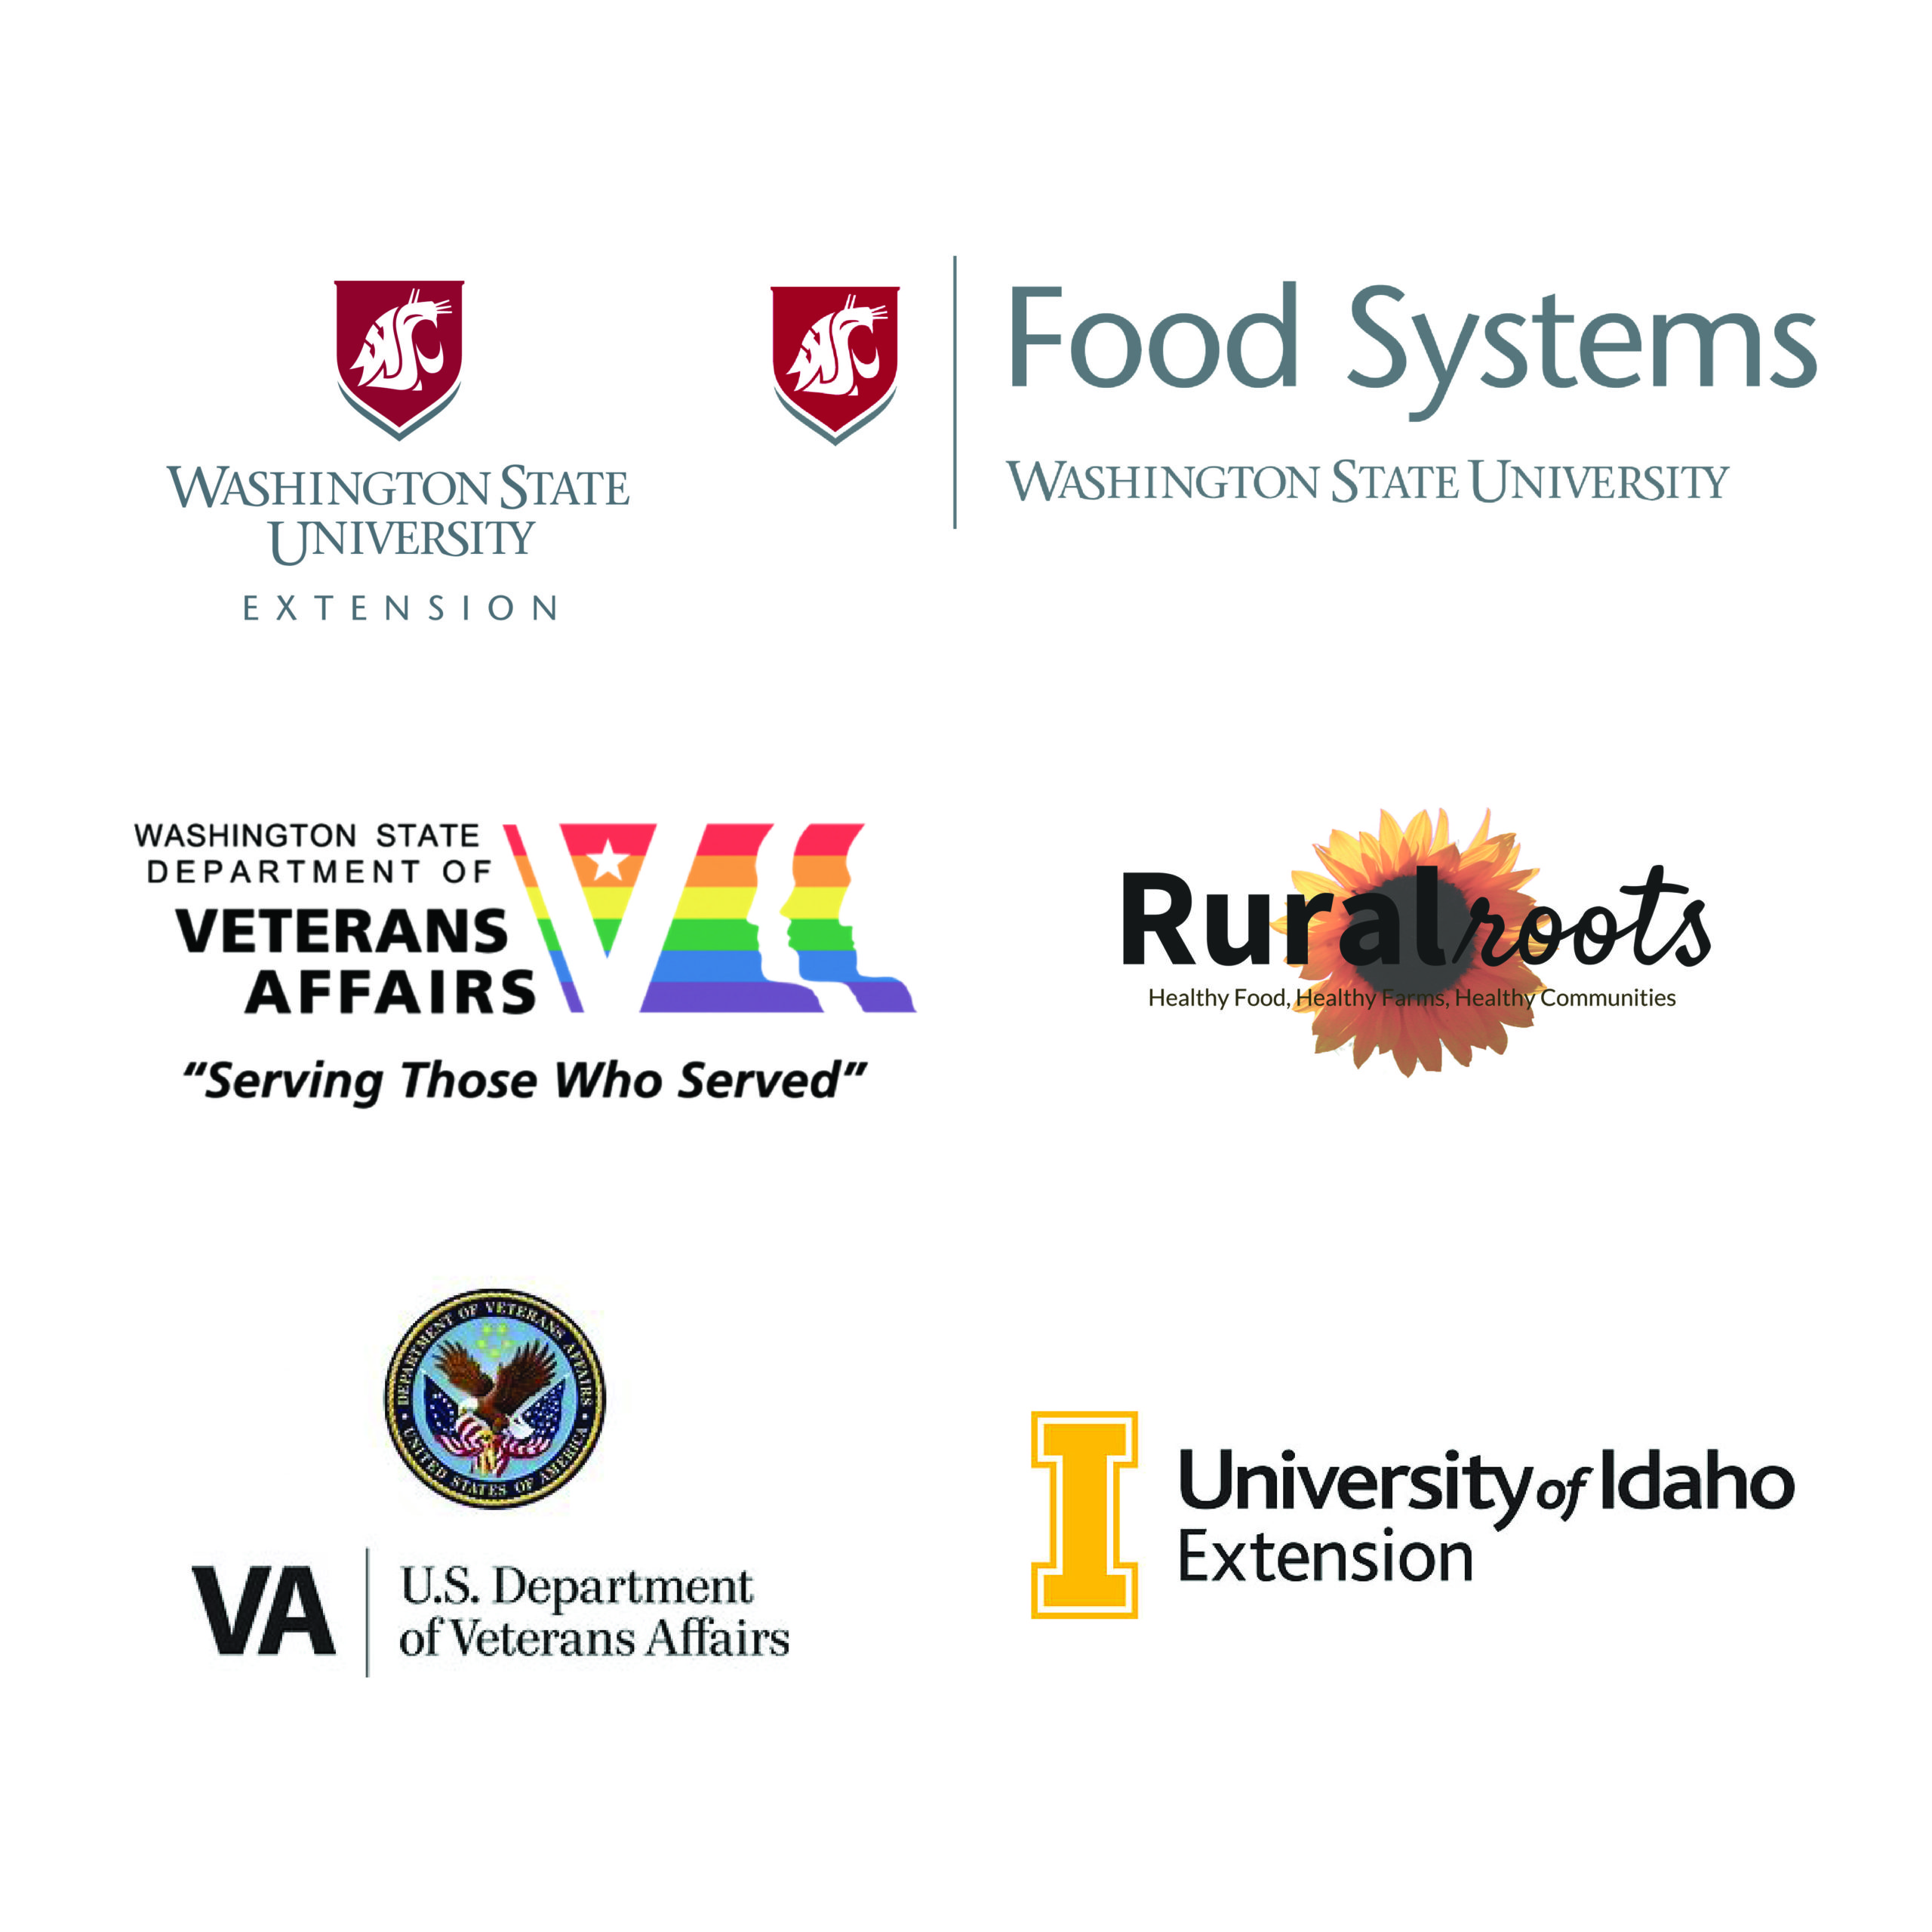 Logos of participating partners: WSU Food Systems, Rural Roots, WA State Veterans Affairs, WSU Extension, University of Idaho Extension